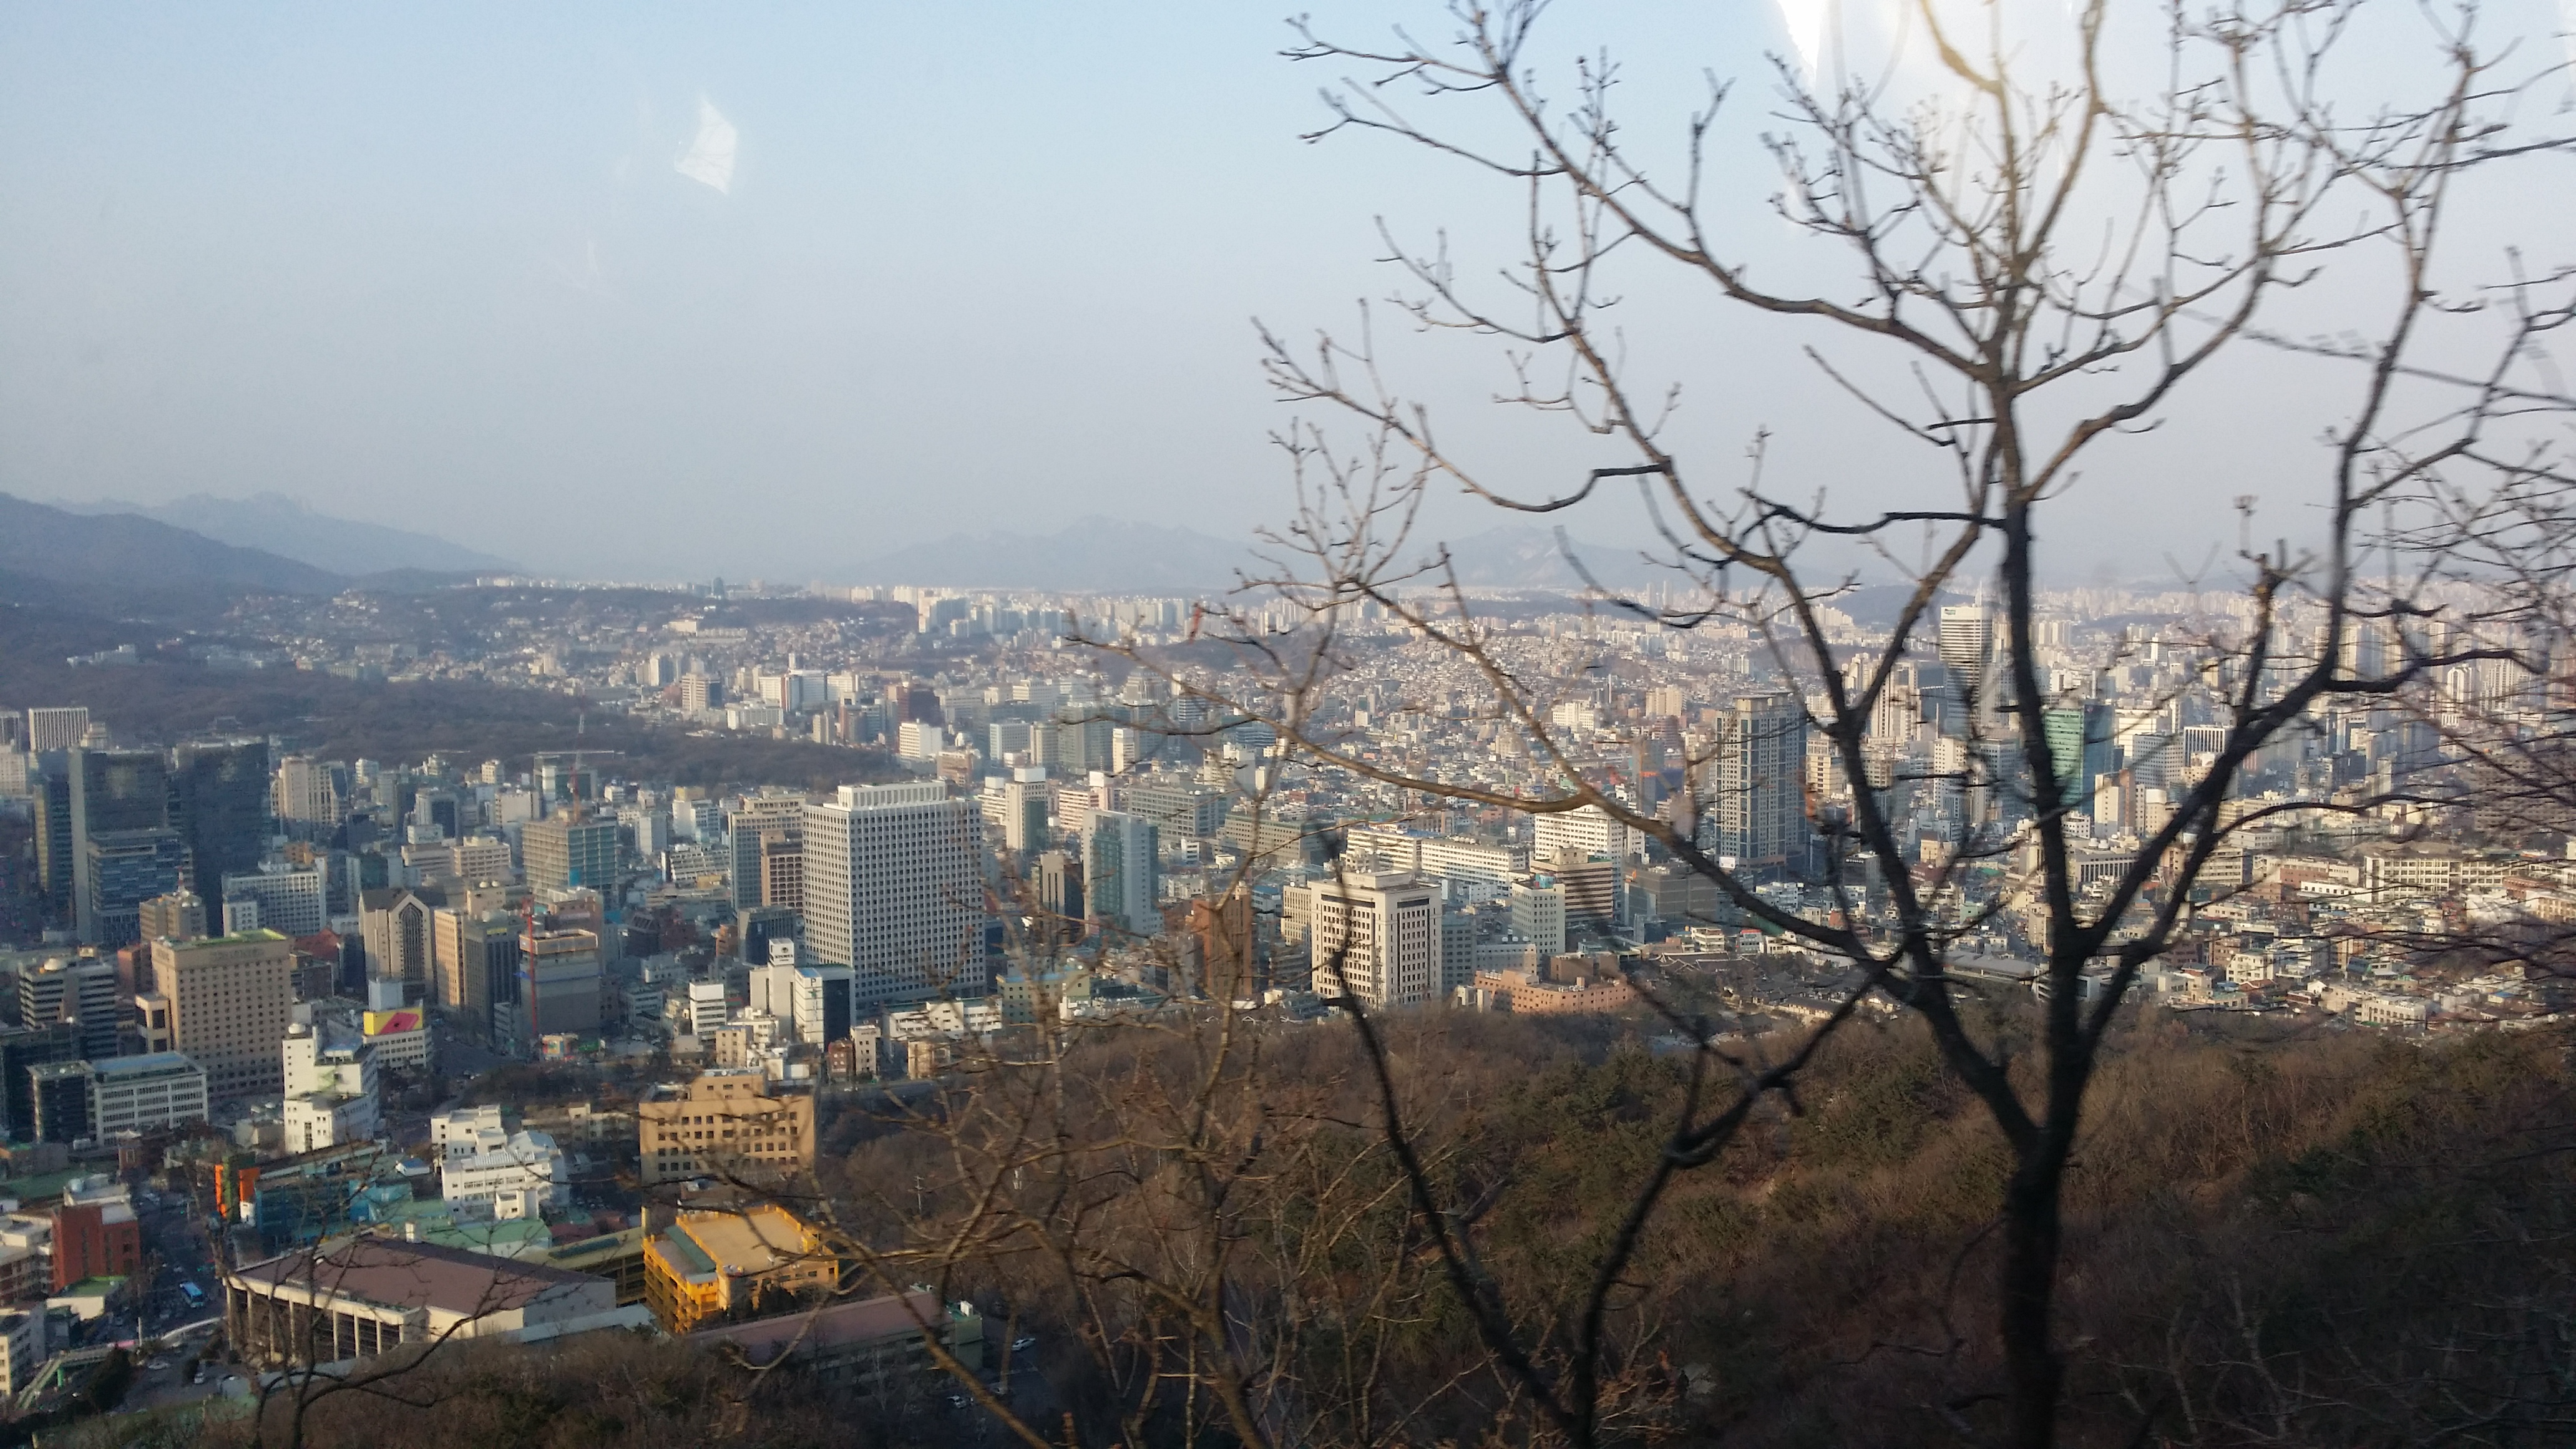 Namsan cable car - View Of Seoul From The Cable Car